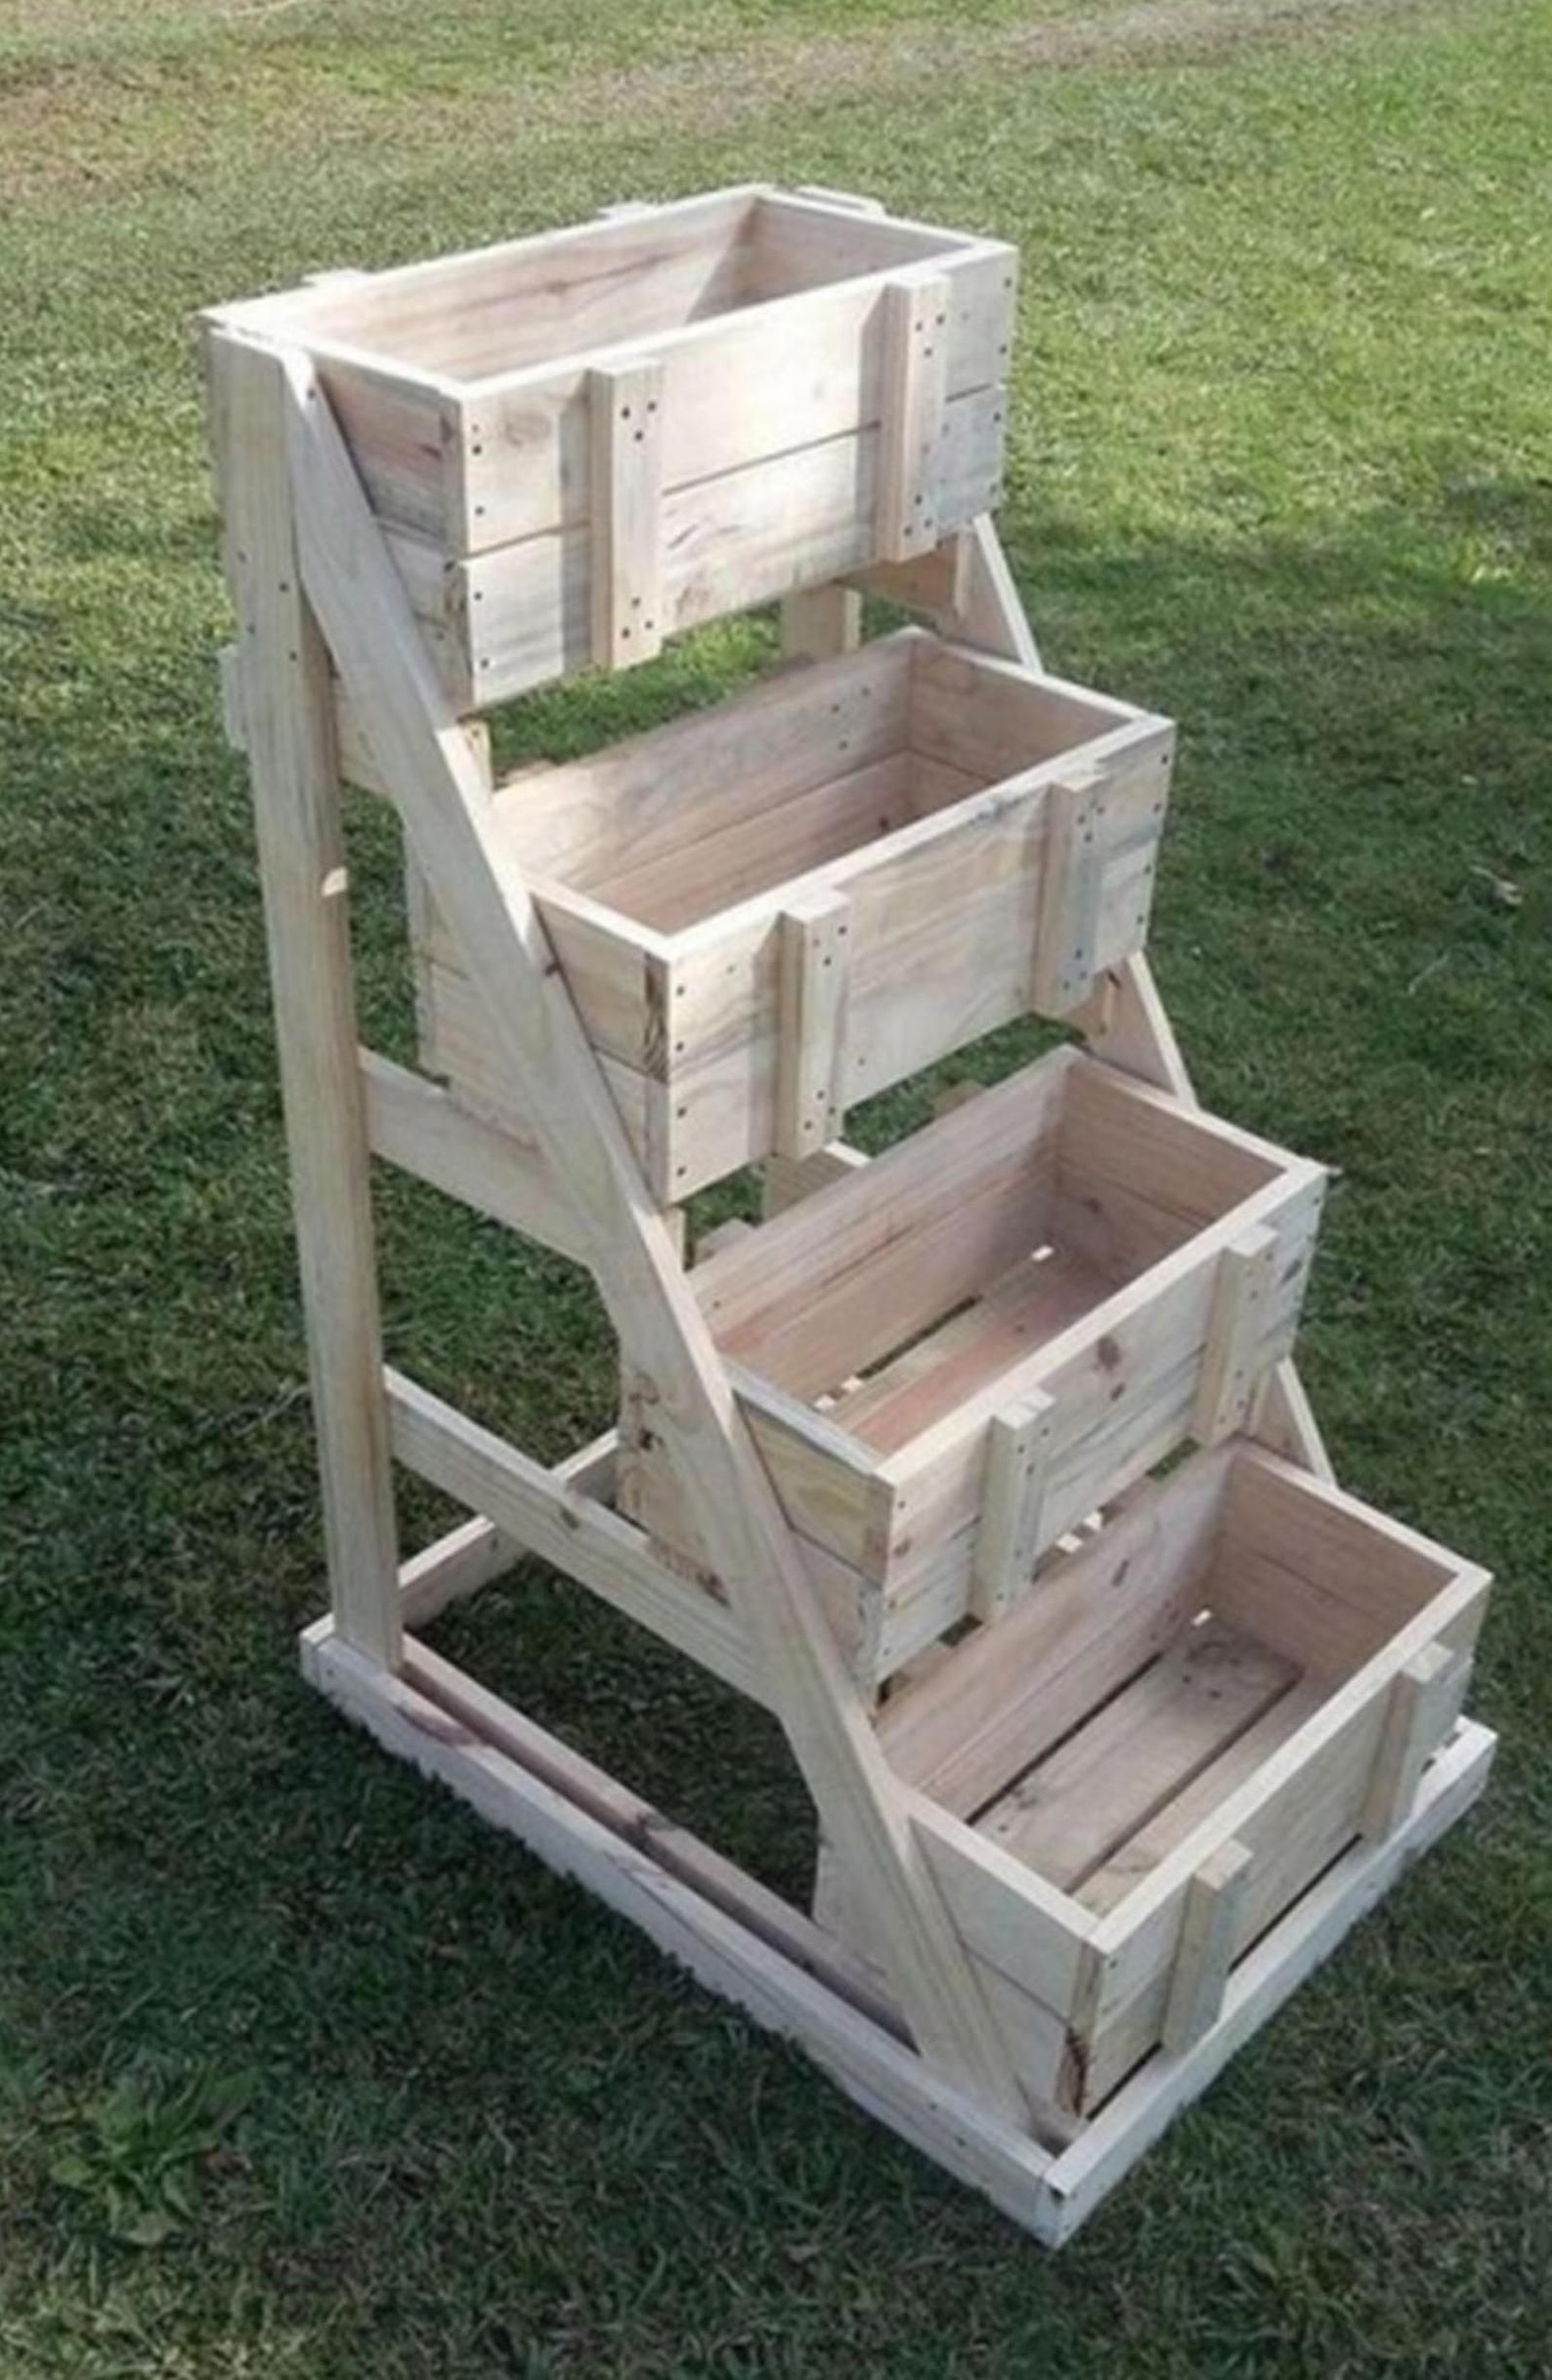 4 Tier Stand Plans is part of Wood pallet planters - 2x11 paper)of details for easy and sturdy assembly   Skill Levelnovicebeginner  Estimated